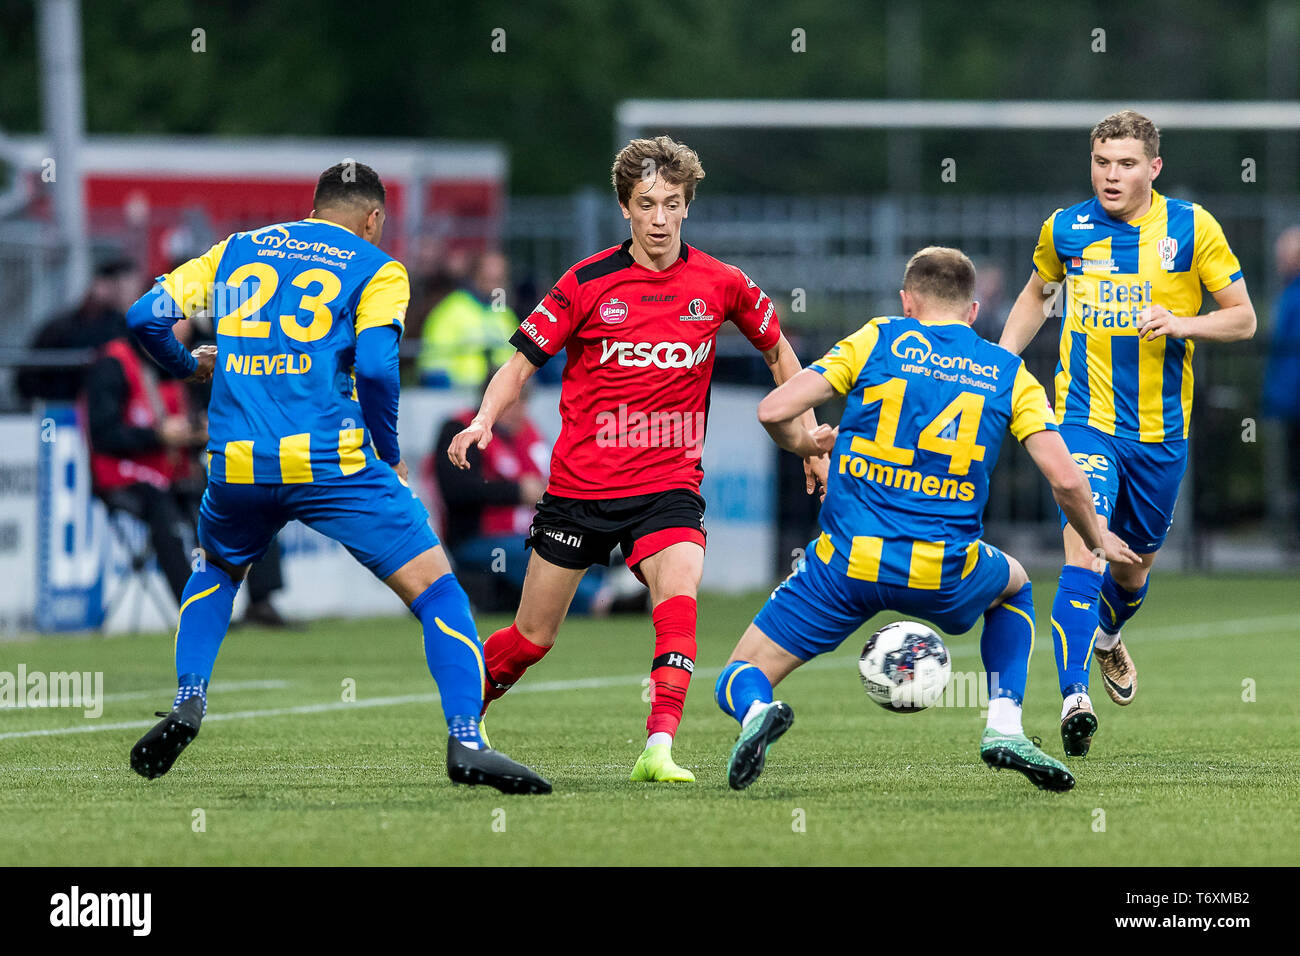 Keuken Kampioen Duiven L R Top Stock Photos L R Top Stock Images Page 2 Alamy